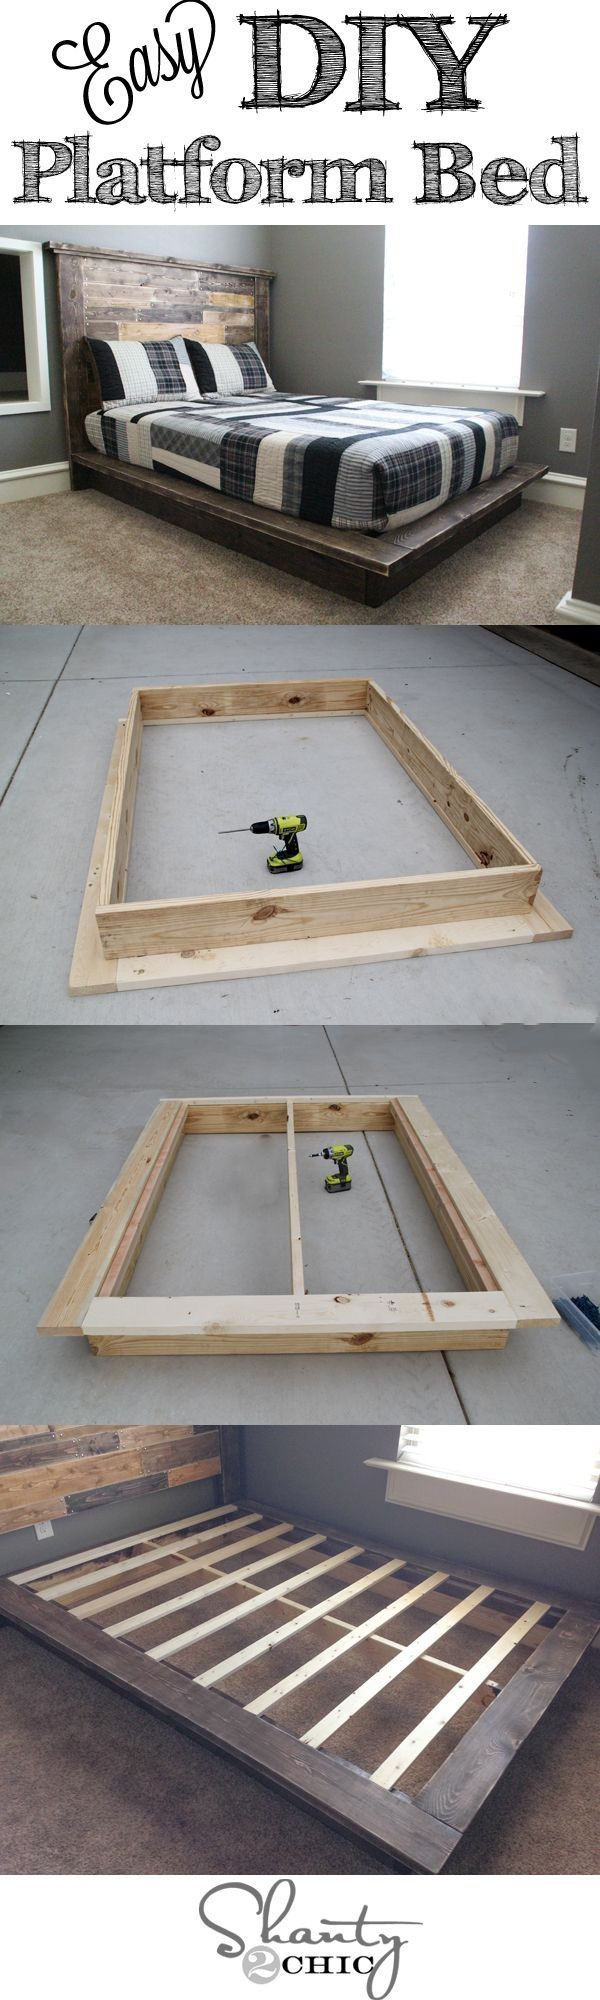 Best ideas about Simple DIY Platform Bed . Save or Pin DIY Platform Bed s and for Now.